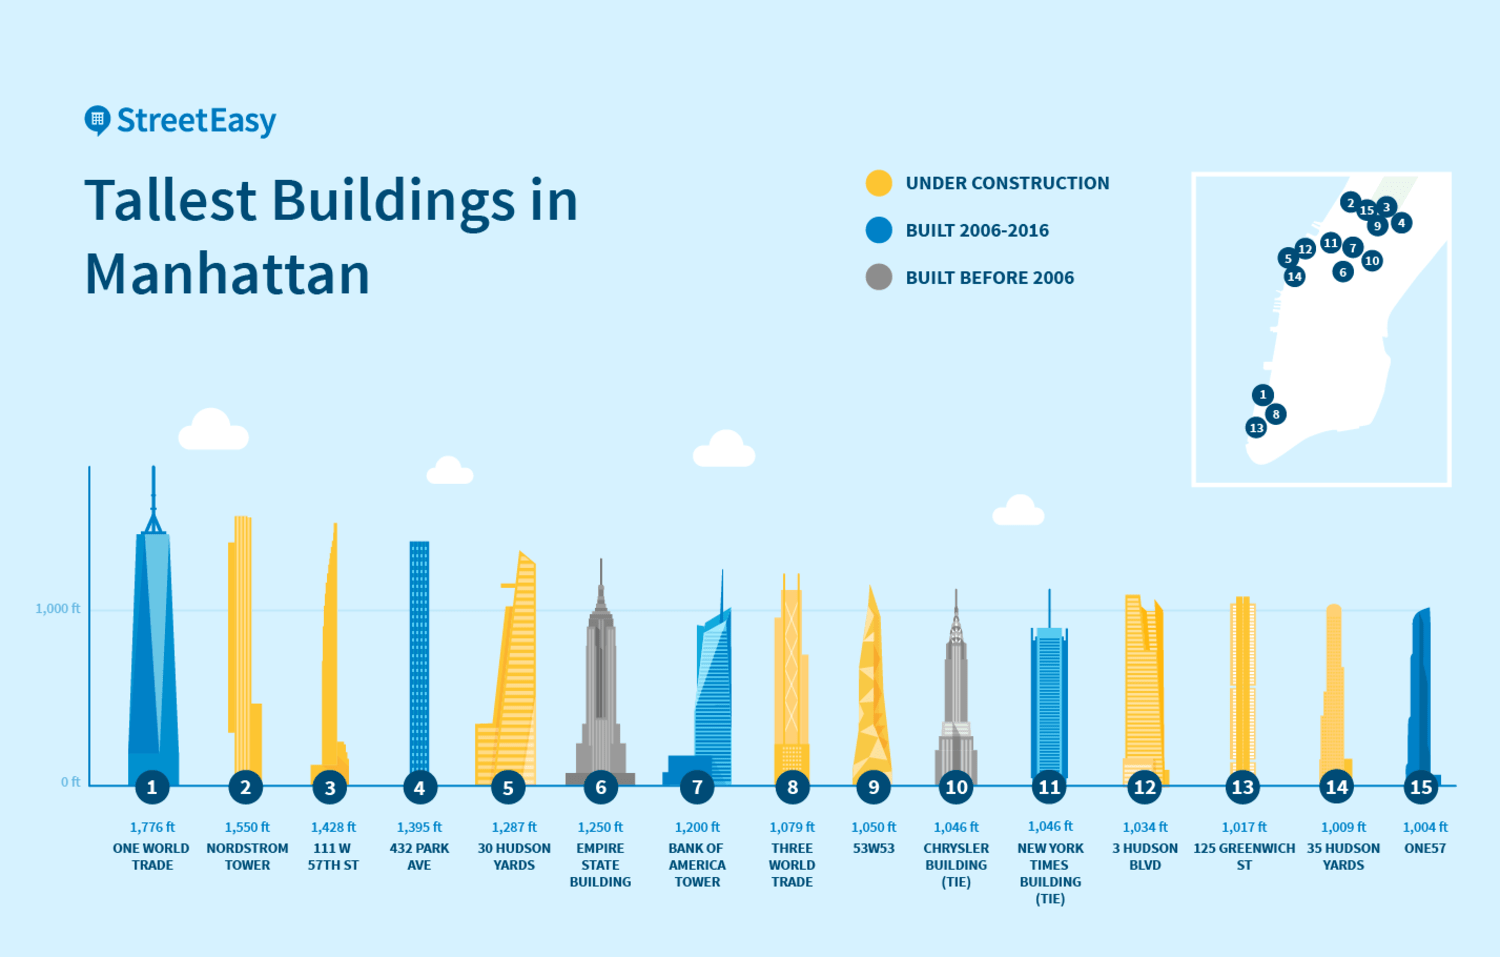 Tallest Residential Building Nyc Infographic Detailing The 15 Tallest Buildings In New